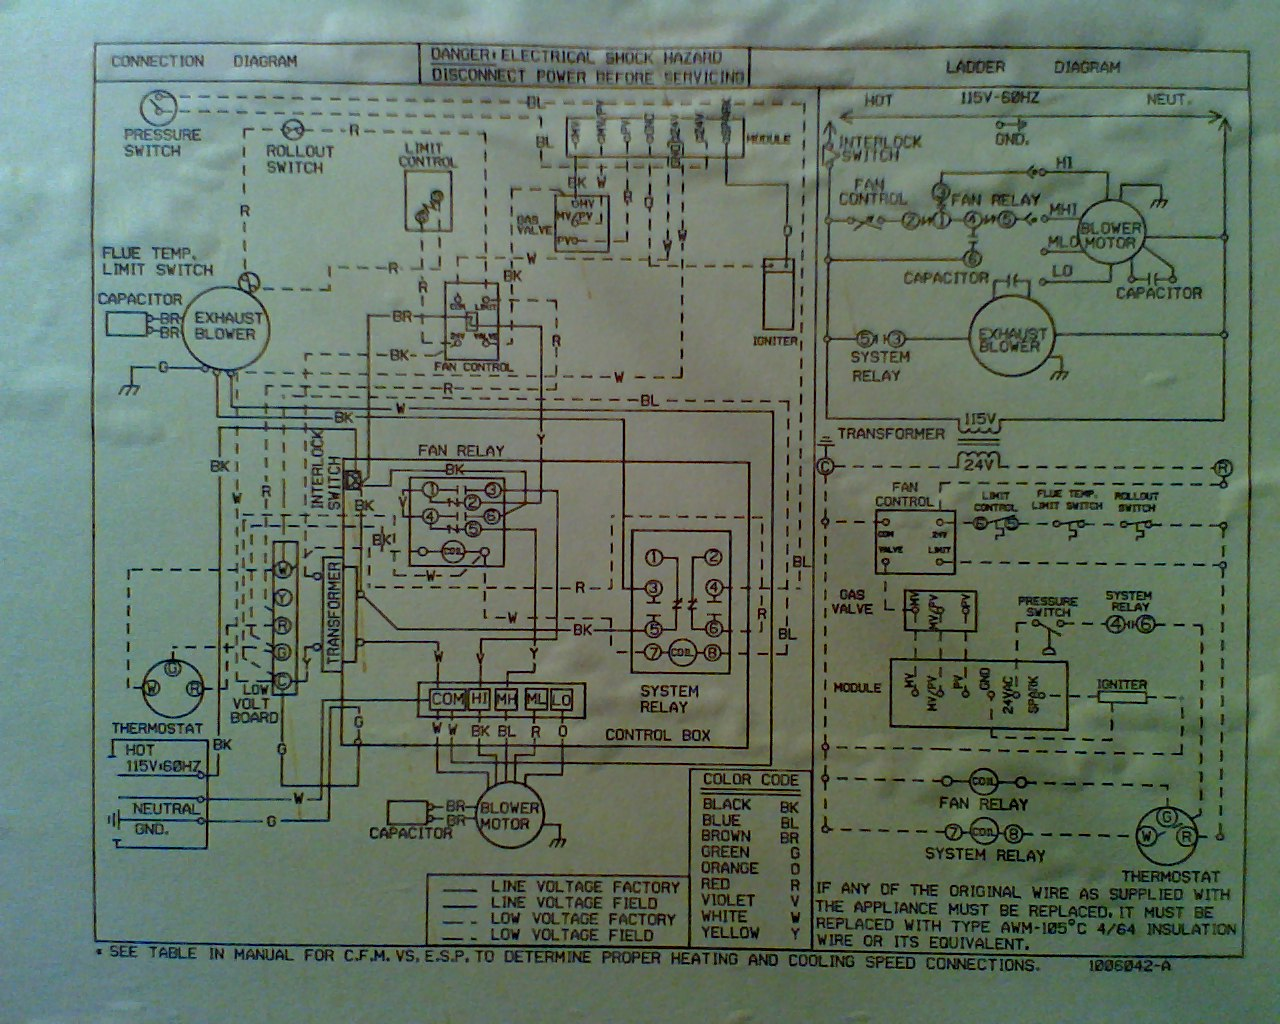 2009 11 20_231603_1120091711a air conditioner y wire grihon com ac, coolers & devices tempstar 2200 air conditioner wiring diagram at crackthecode.co